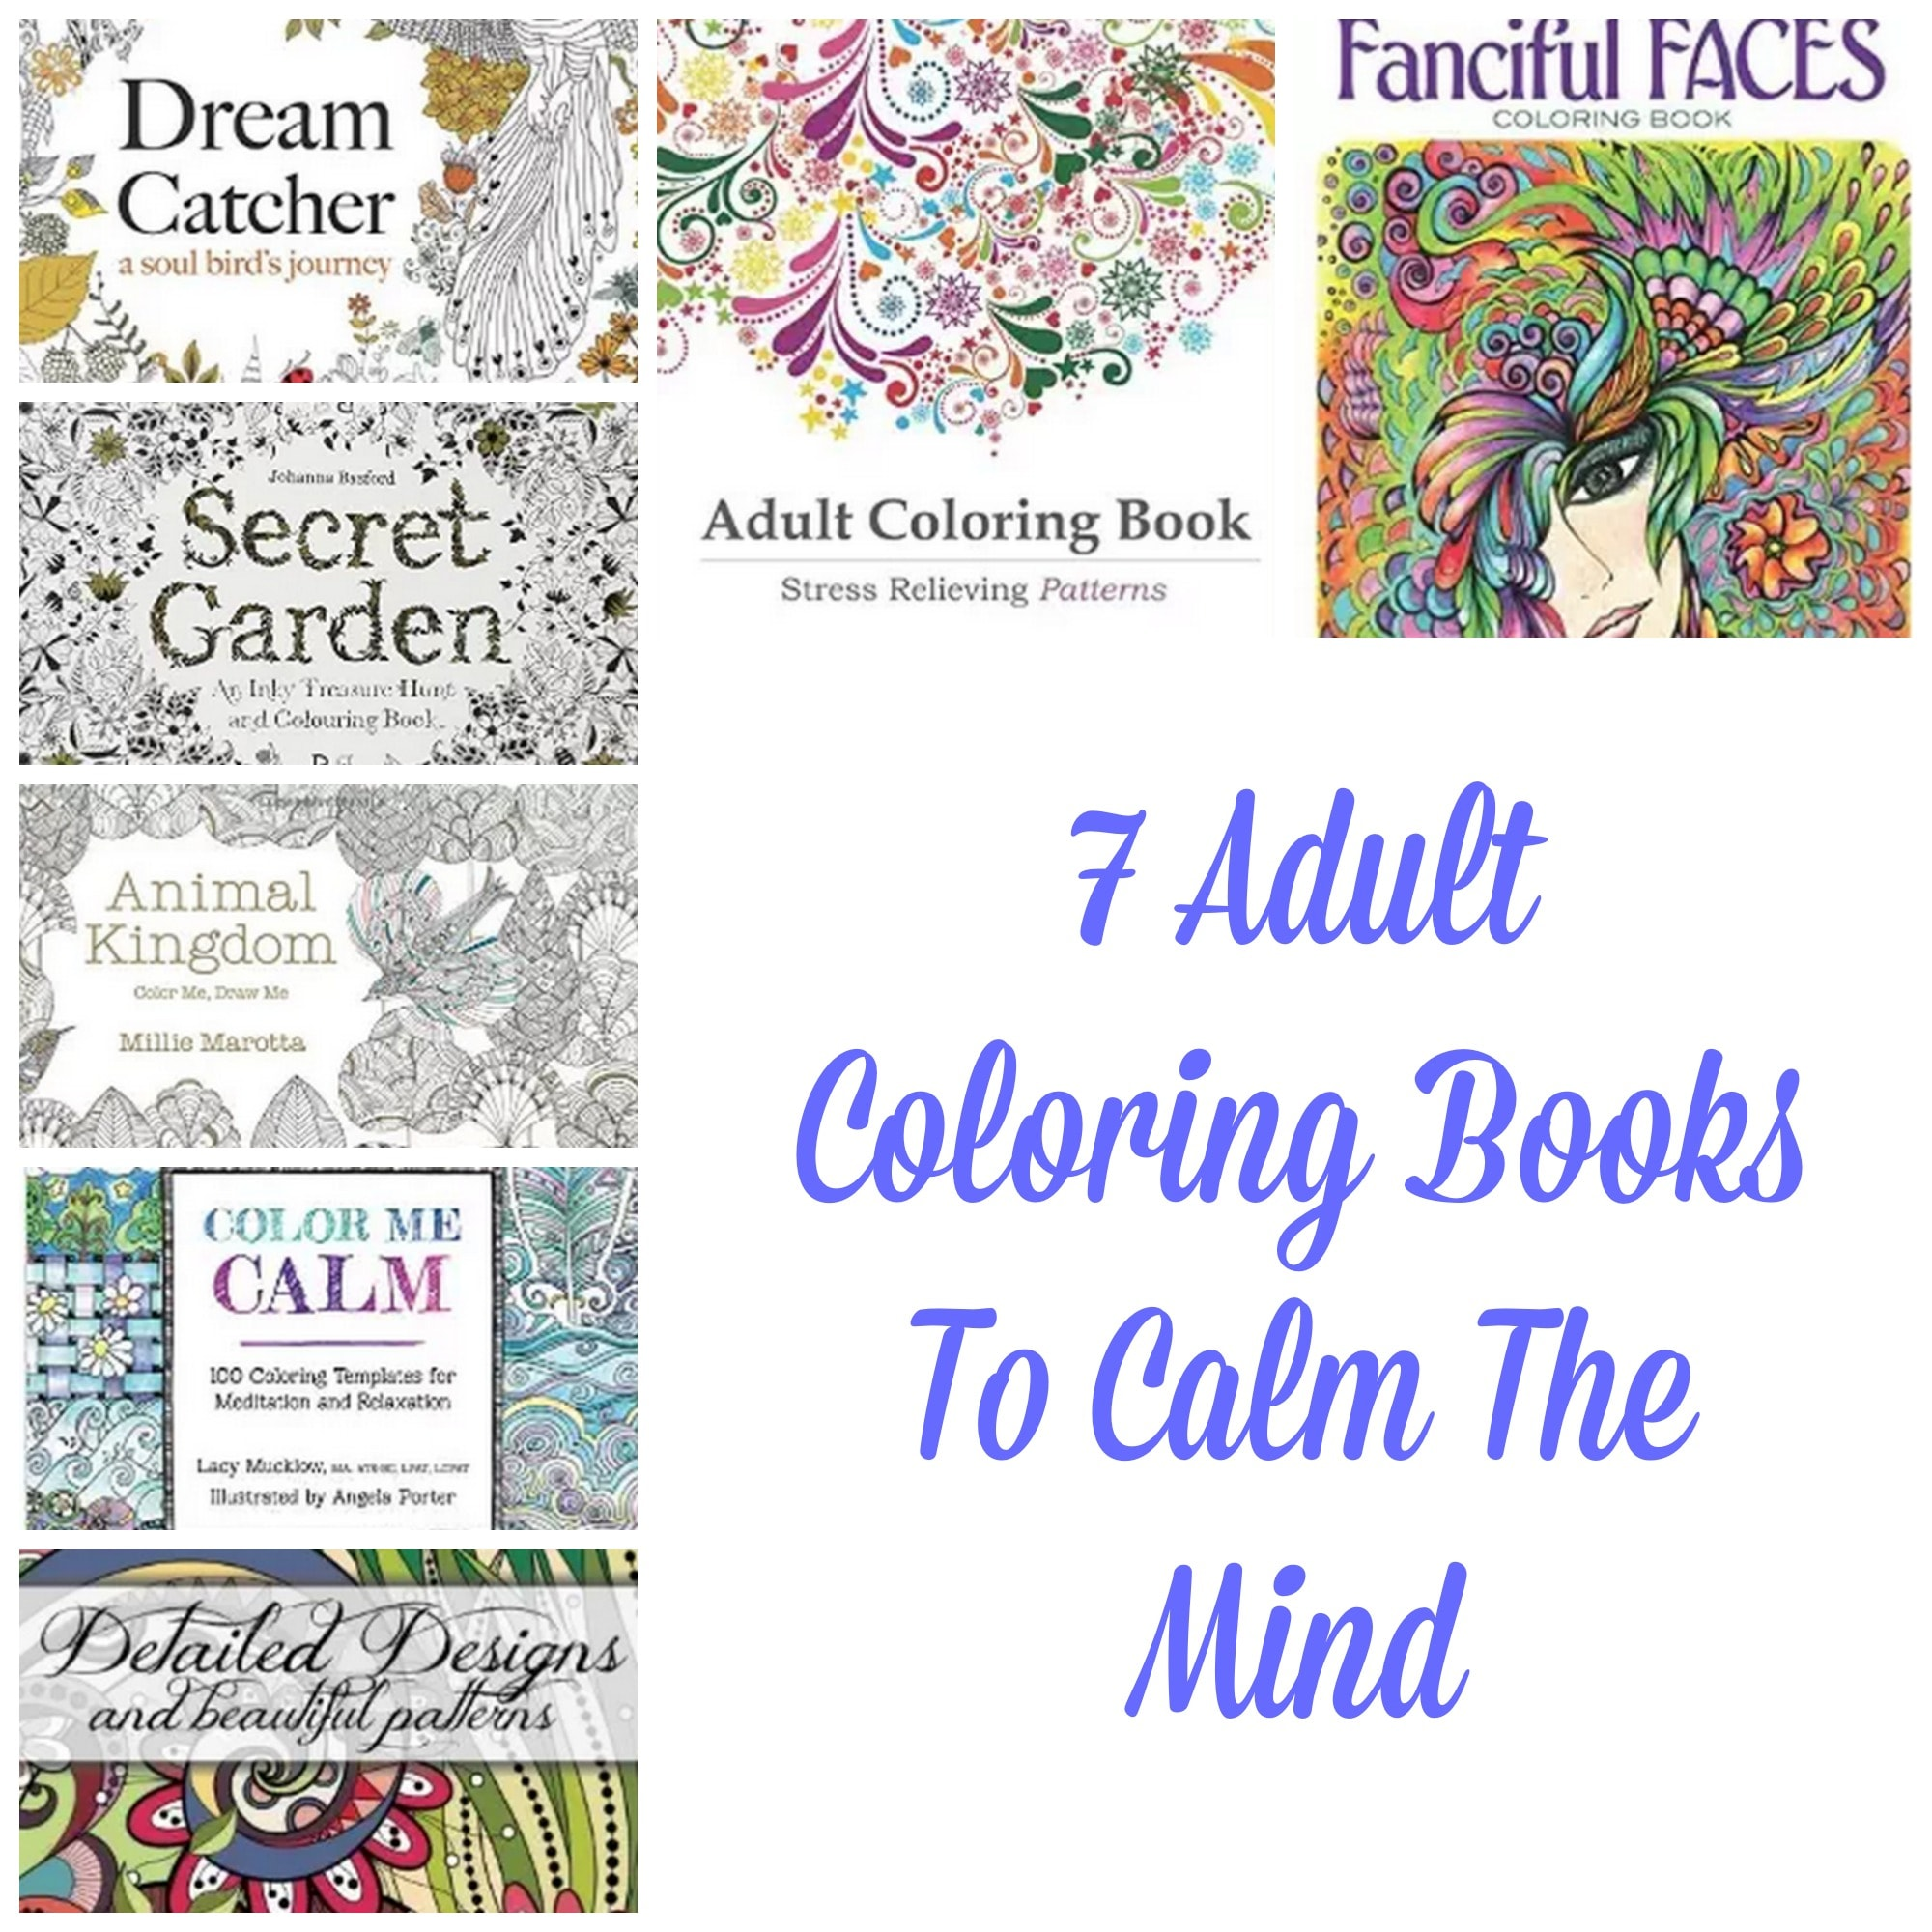 Adult Coloring Books To Calm The Mind